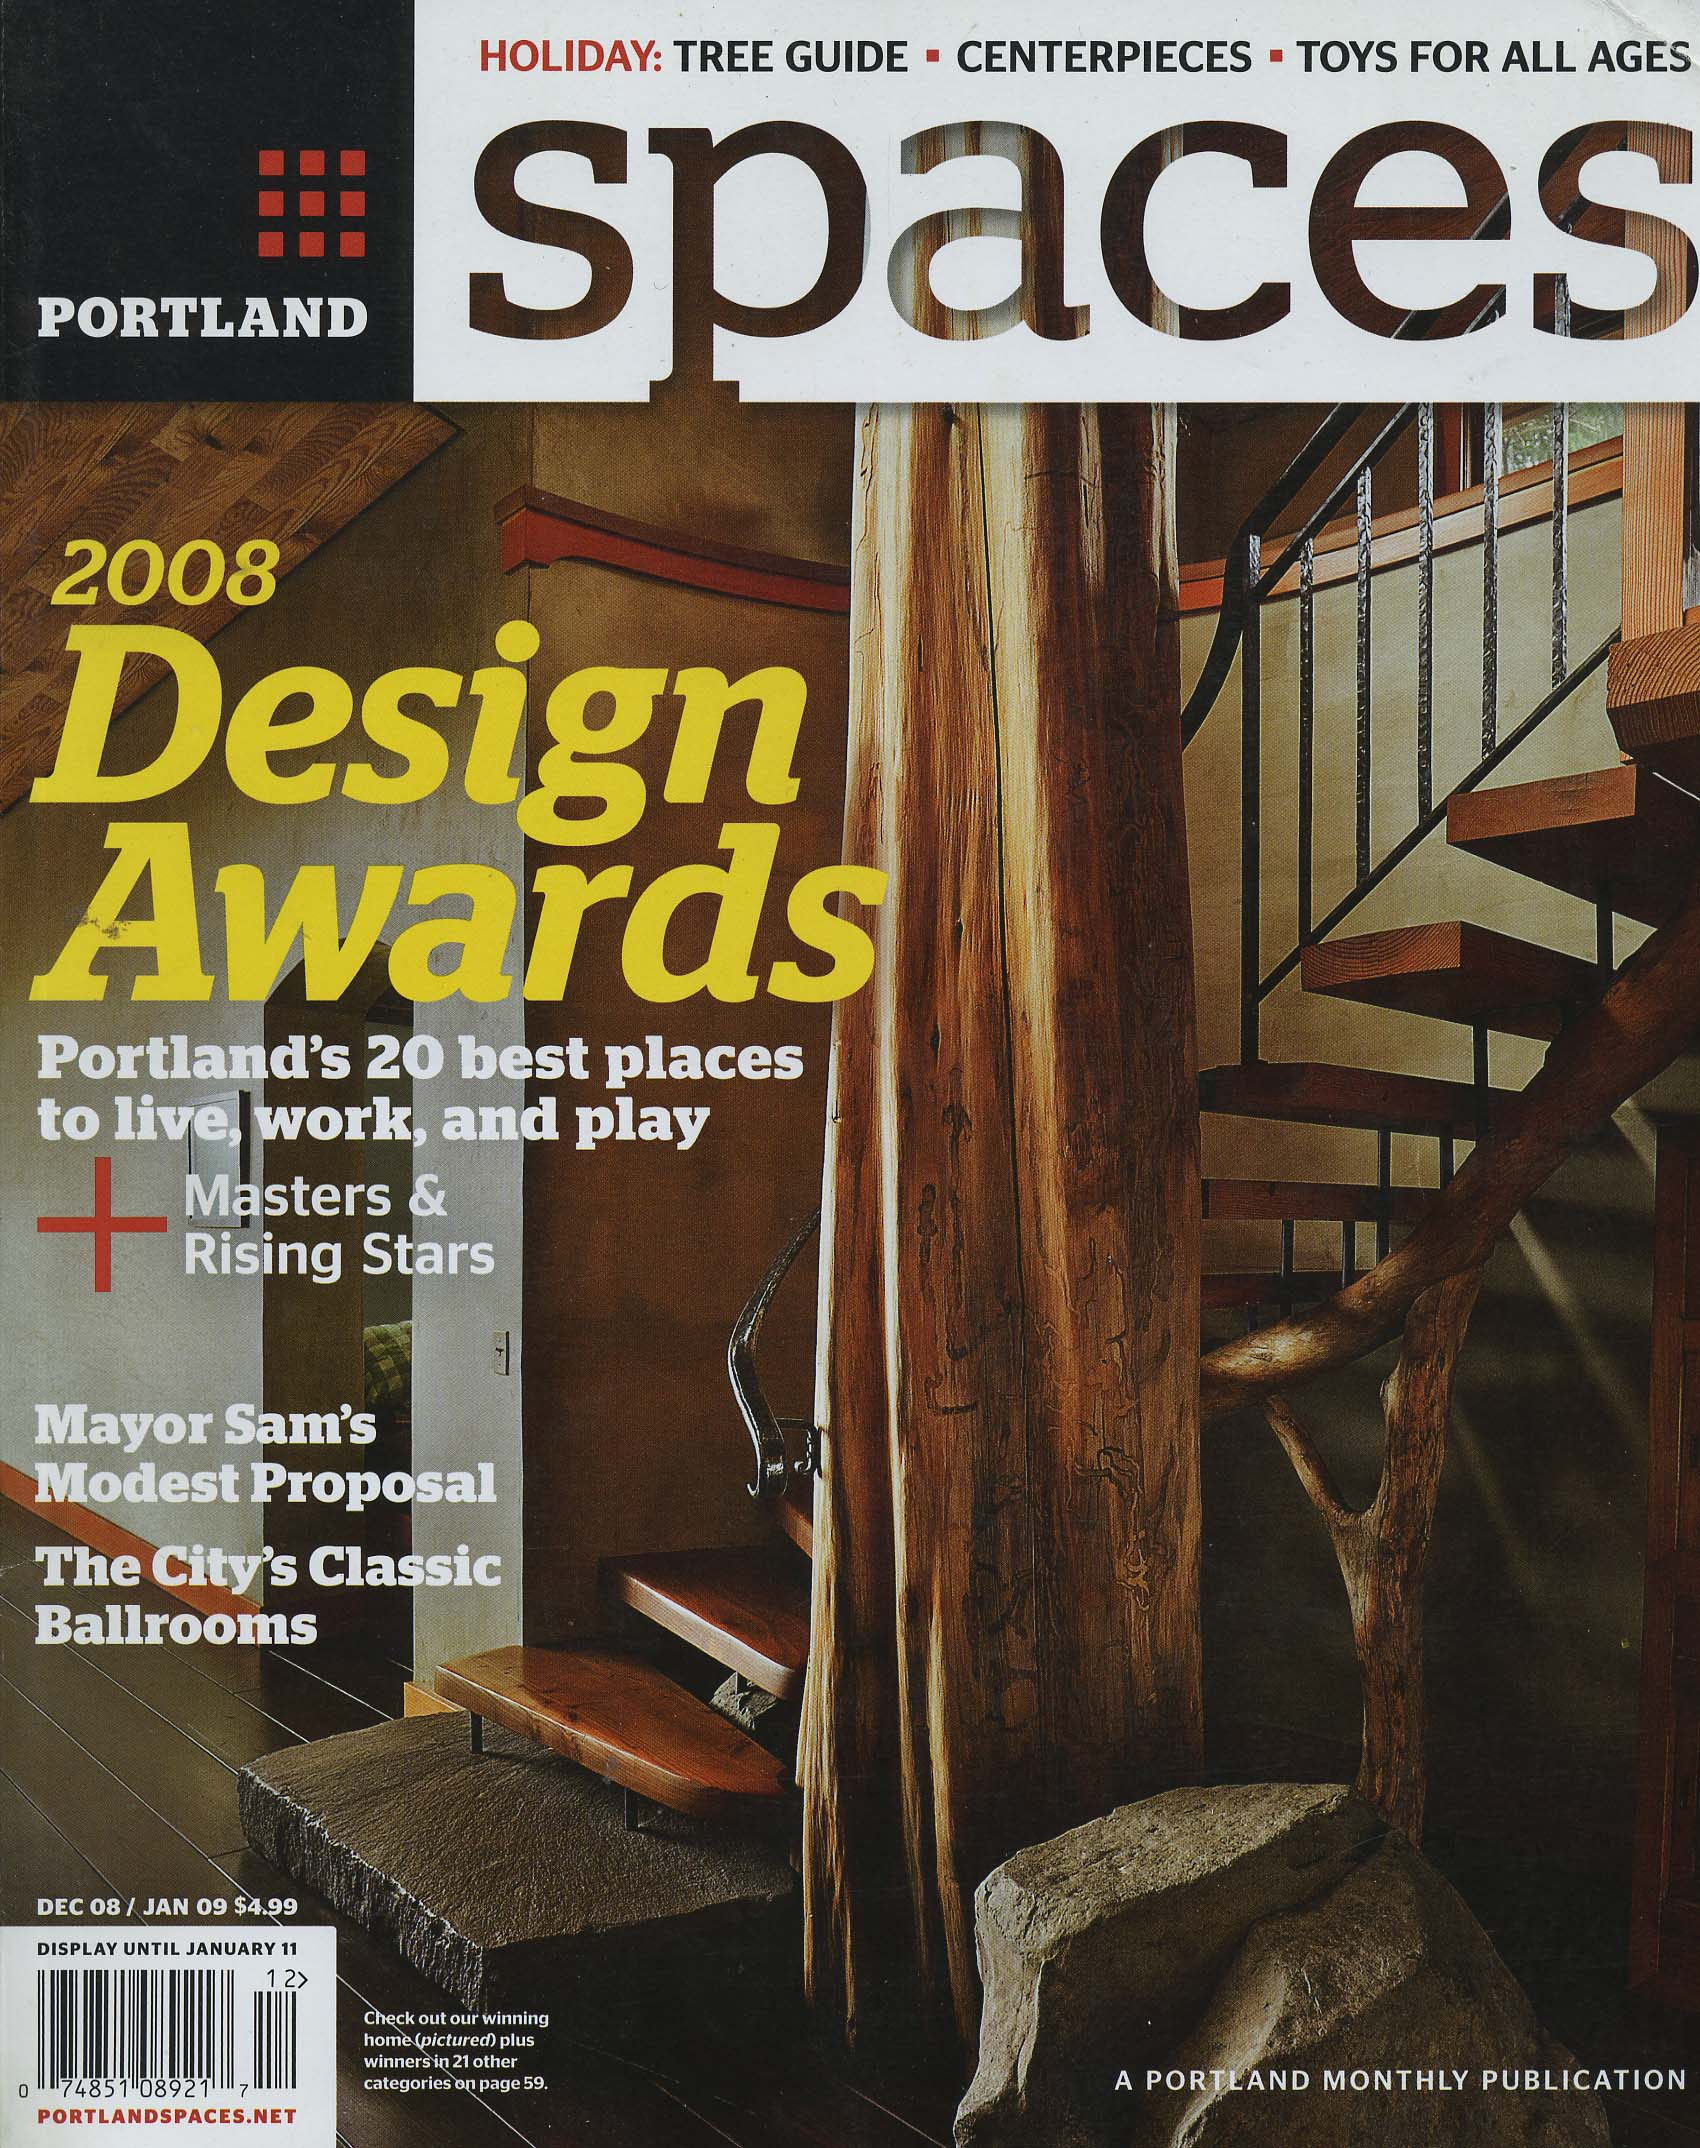 pdx-spaces-2009-1